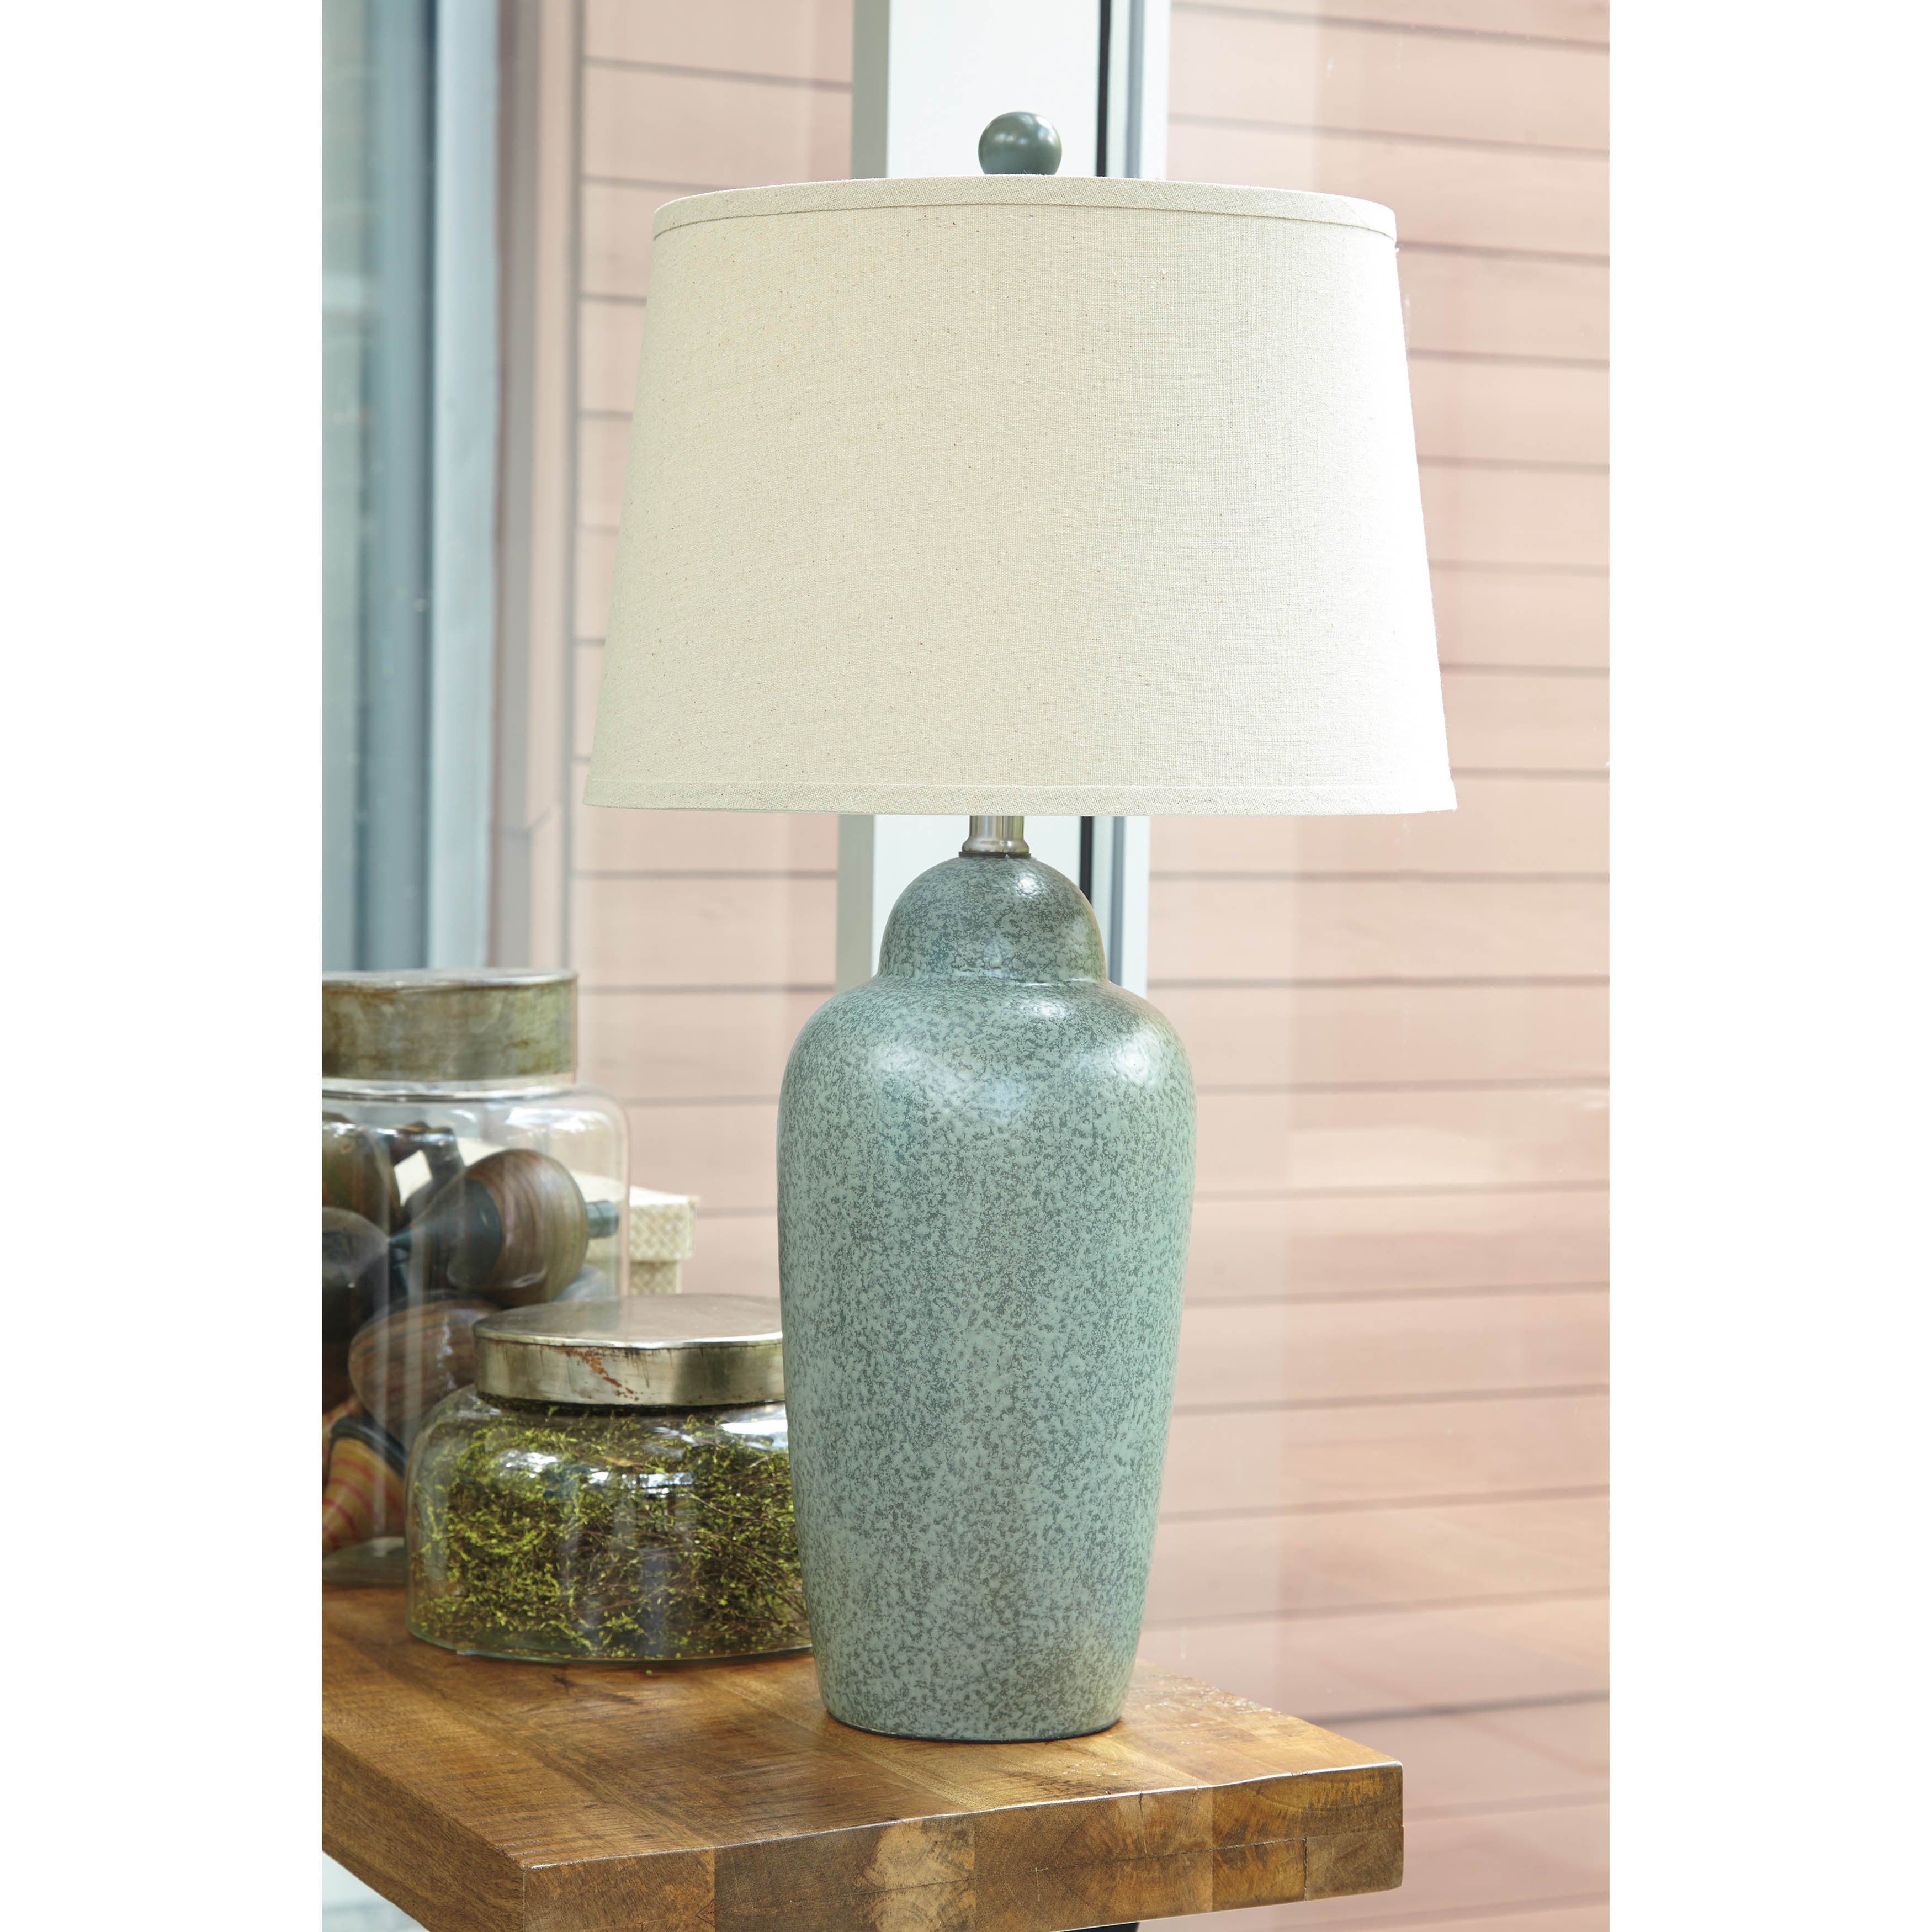 Saher green 30 inch ceramic table lamp free shipping today saher green 30 inch ceramic table lamp free shipping today overstock 17813585 aloadofball Images